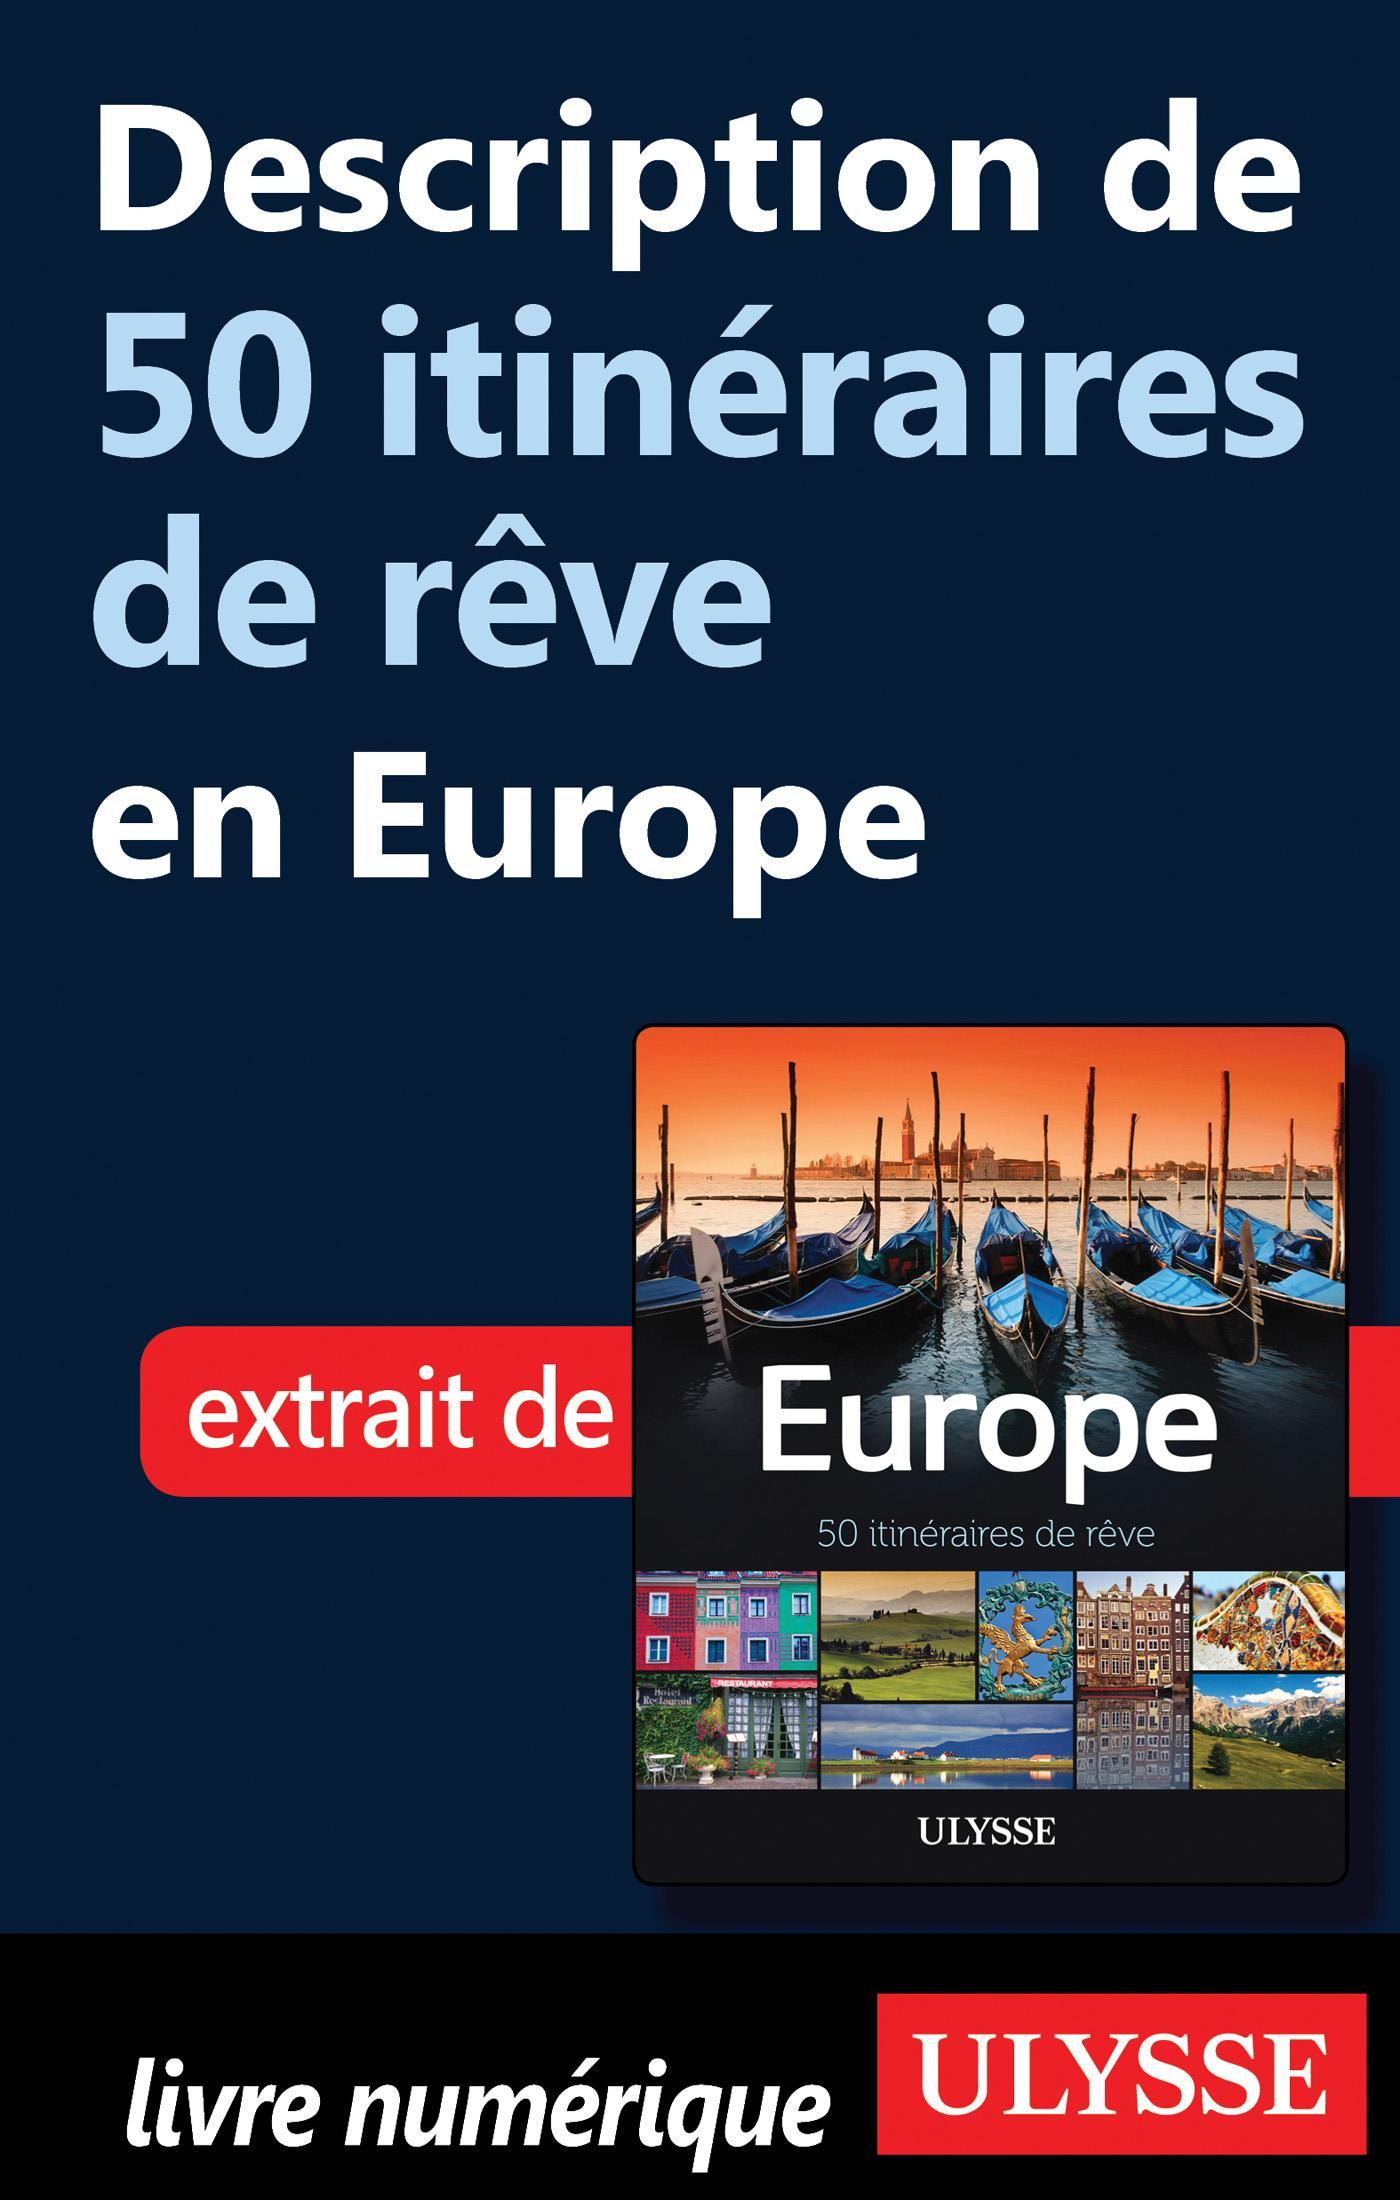 Description de 50 itinéraires de rêve en Europe